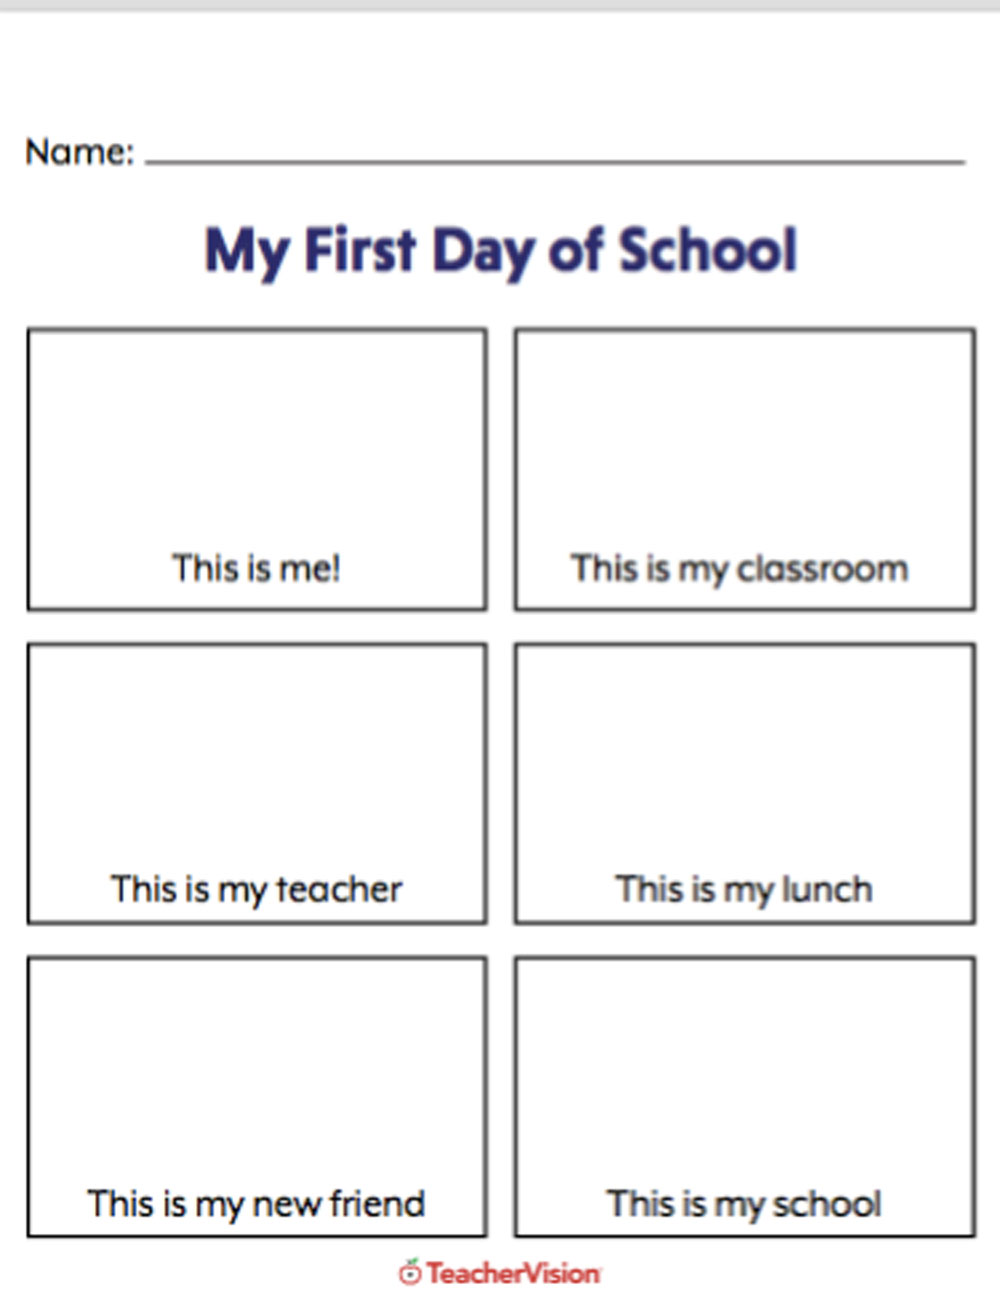 hight resolution of My First Day of School Picture Activity - TeacherVision